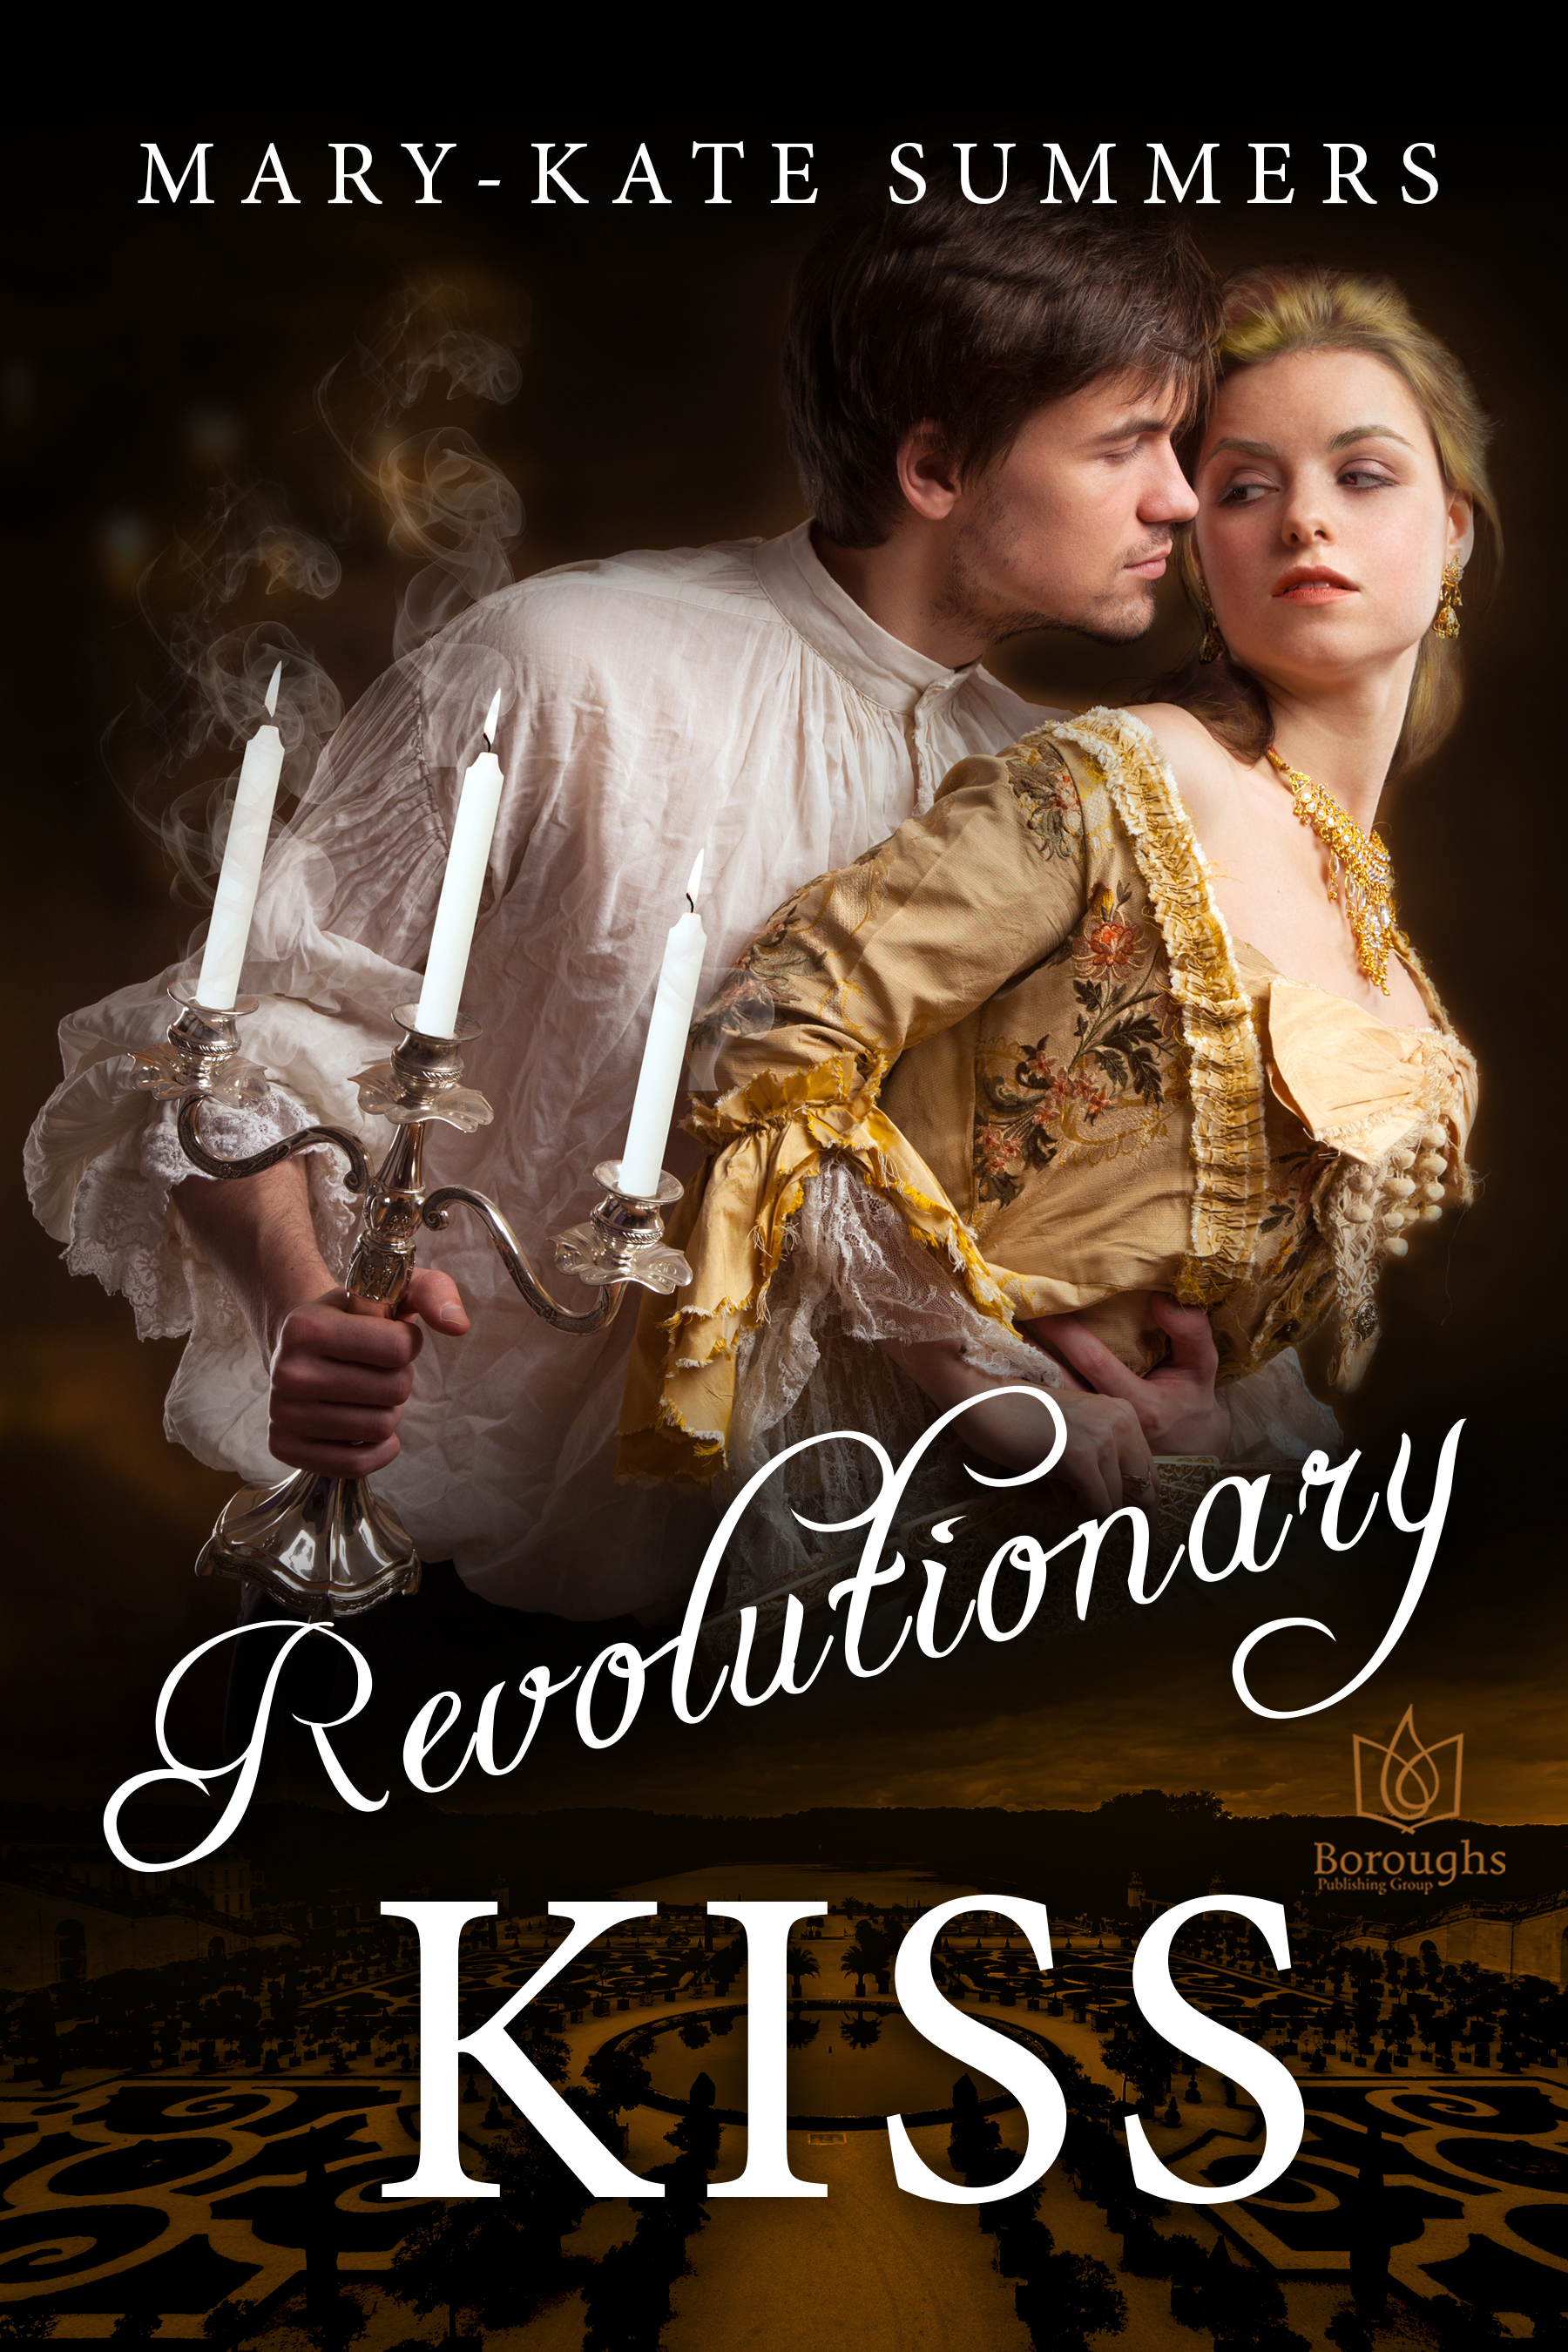 REVOLUTIONARY KISS by Mary-Kate Summers